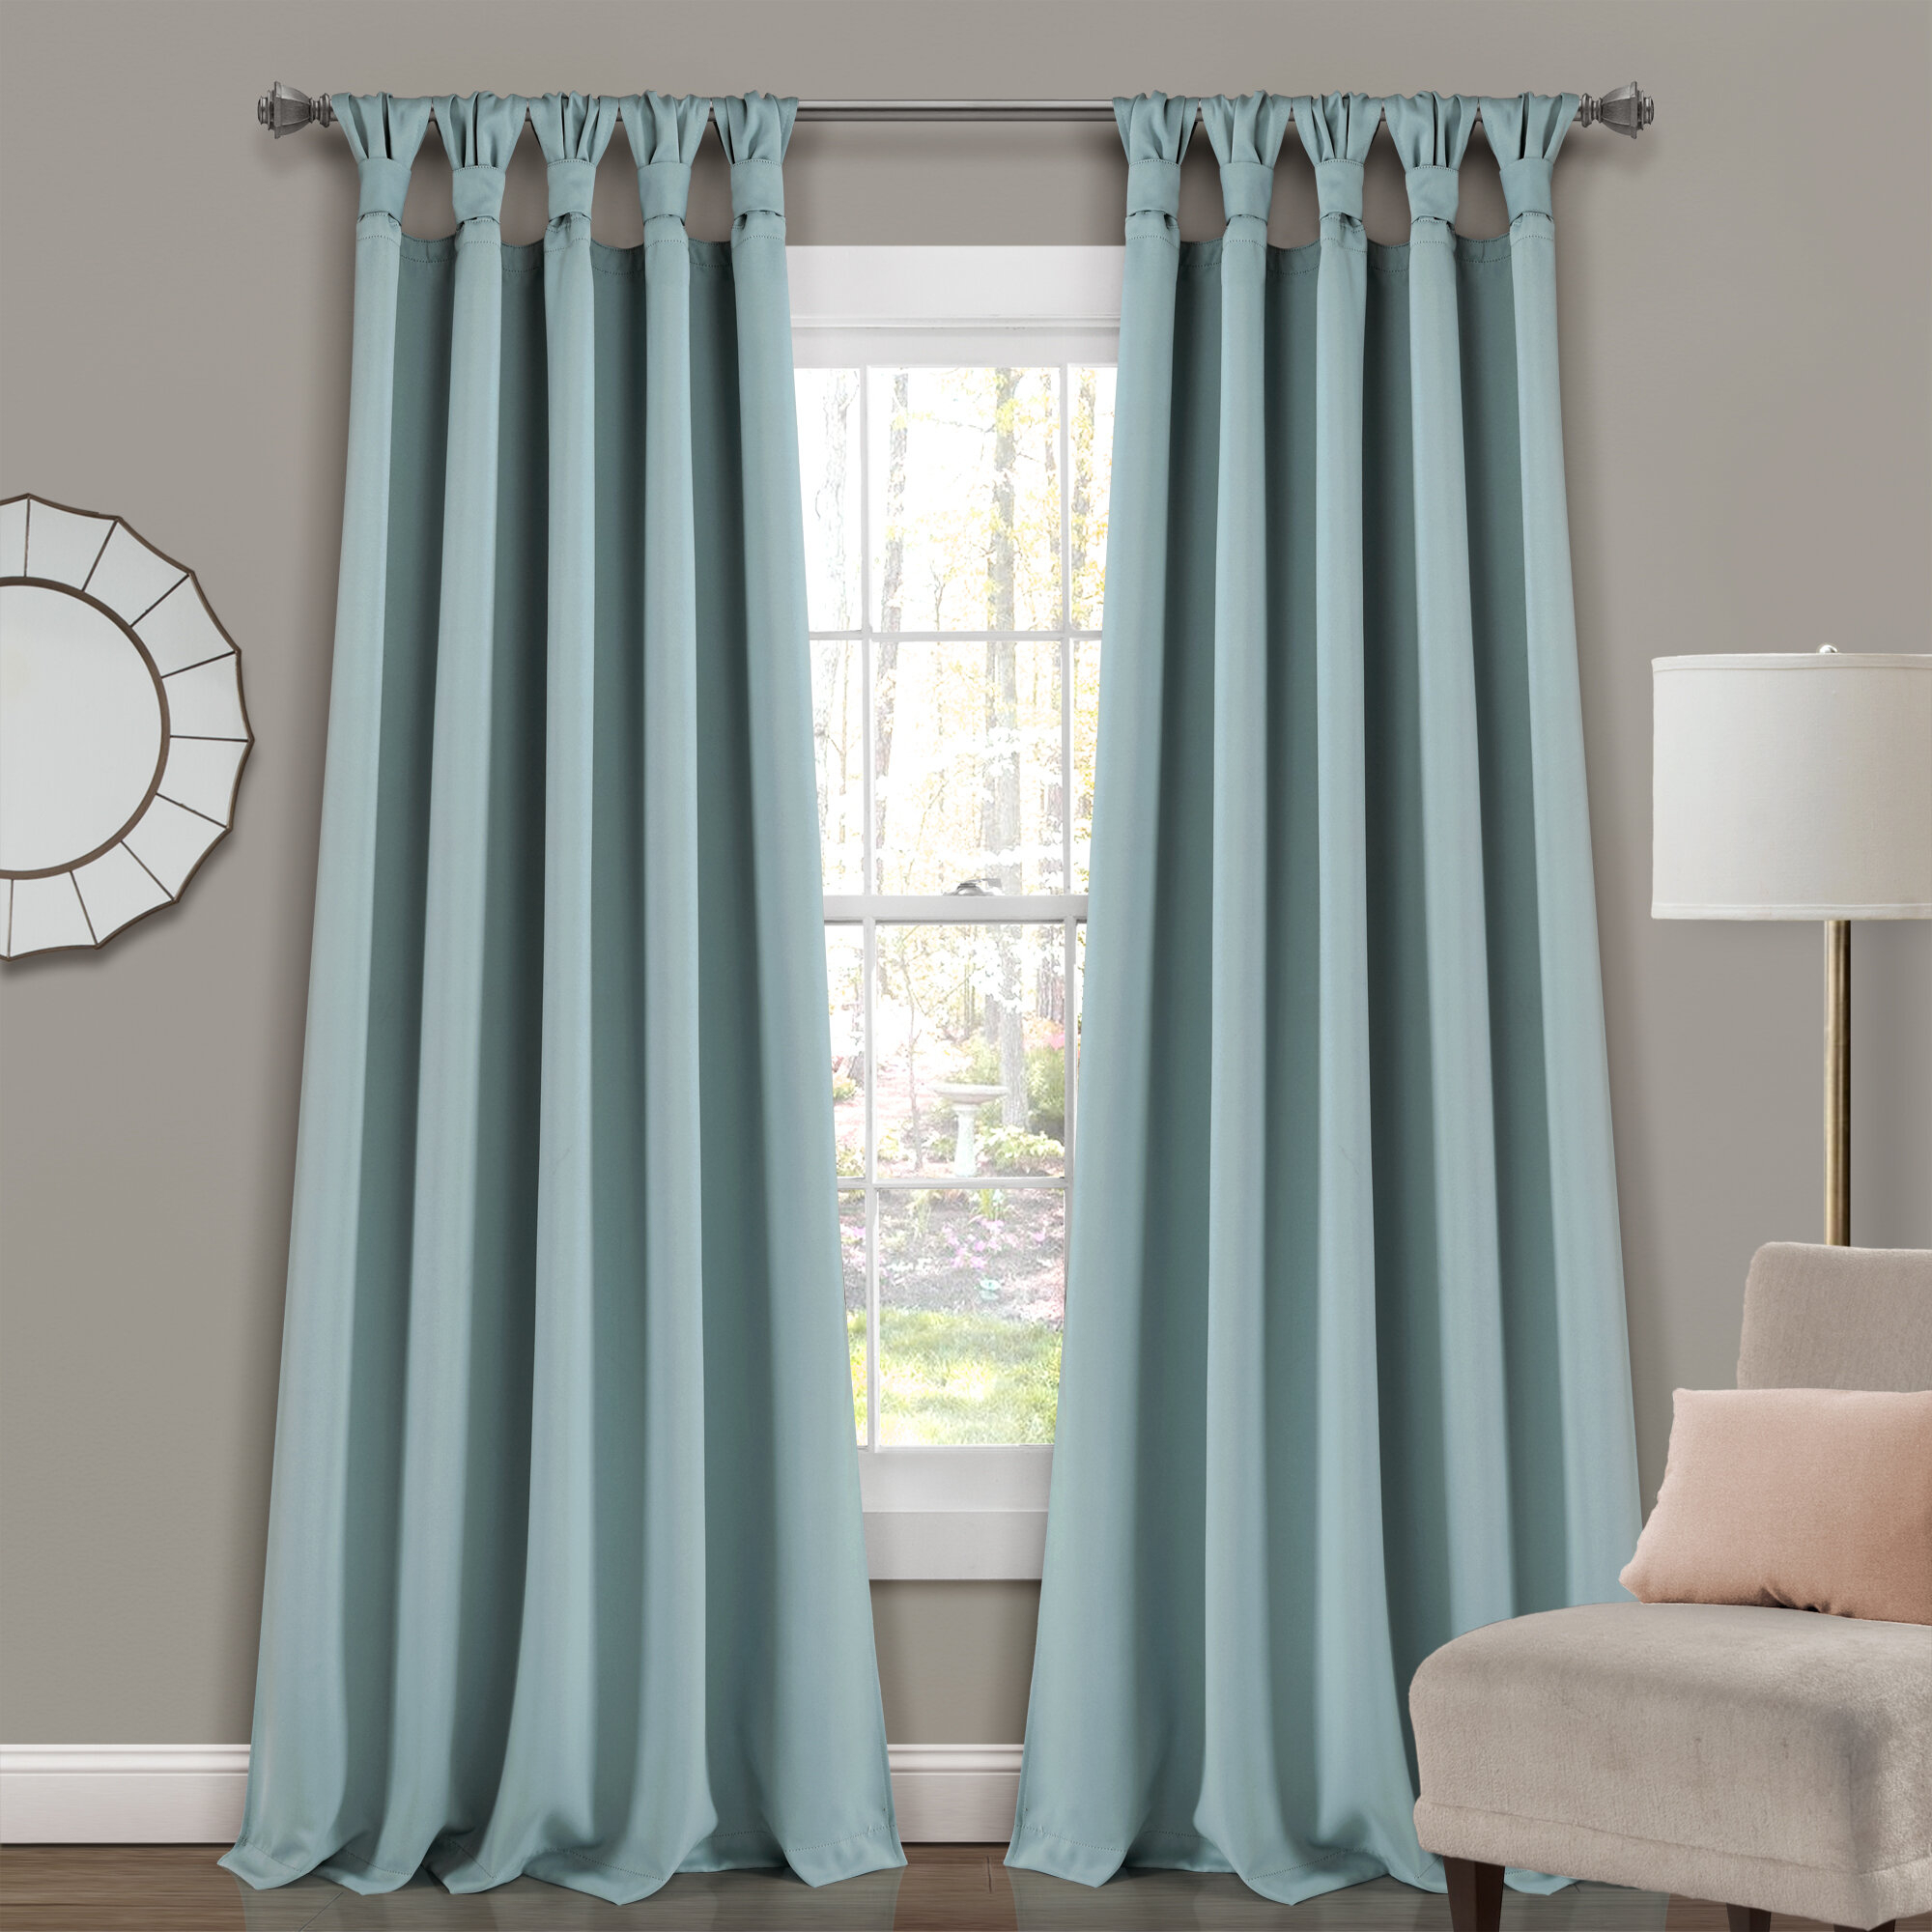 Guthridge Knotted Tab Top Solid Color Thermal Blackout Panel Pair Intended For Knotted Tab Top Window Curtain Panel Pairs (View 8 of 20)